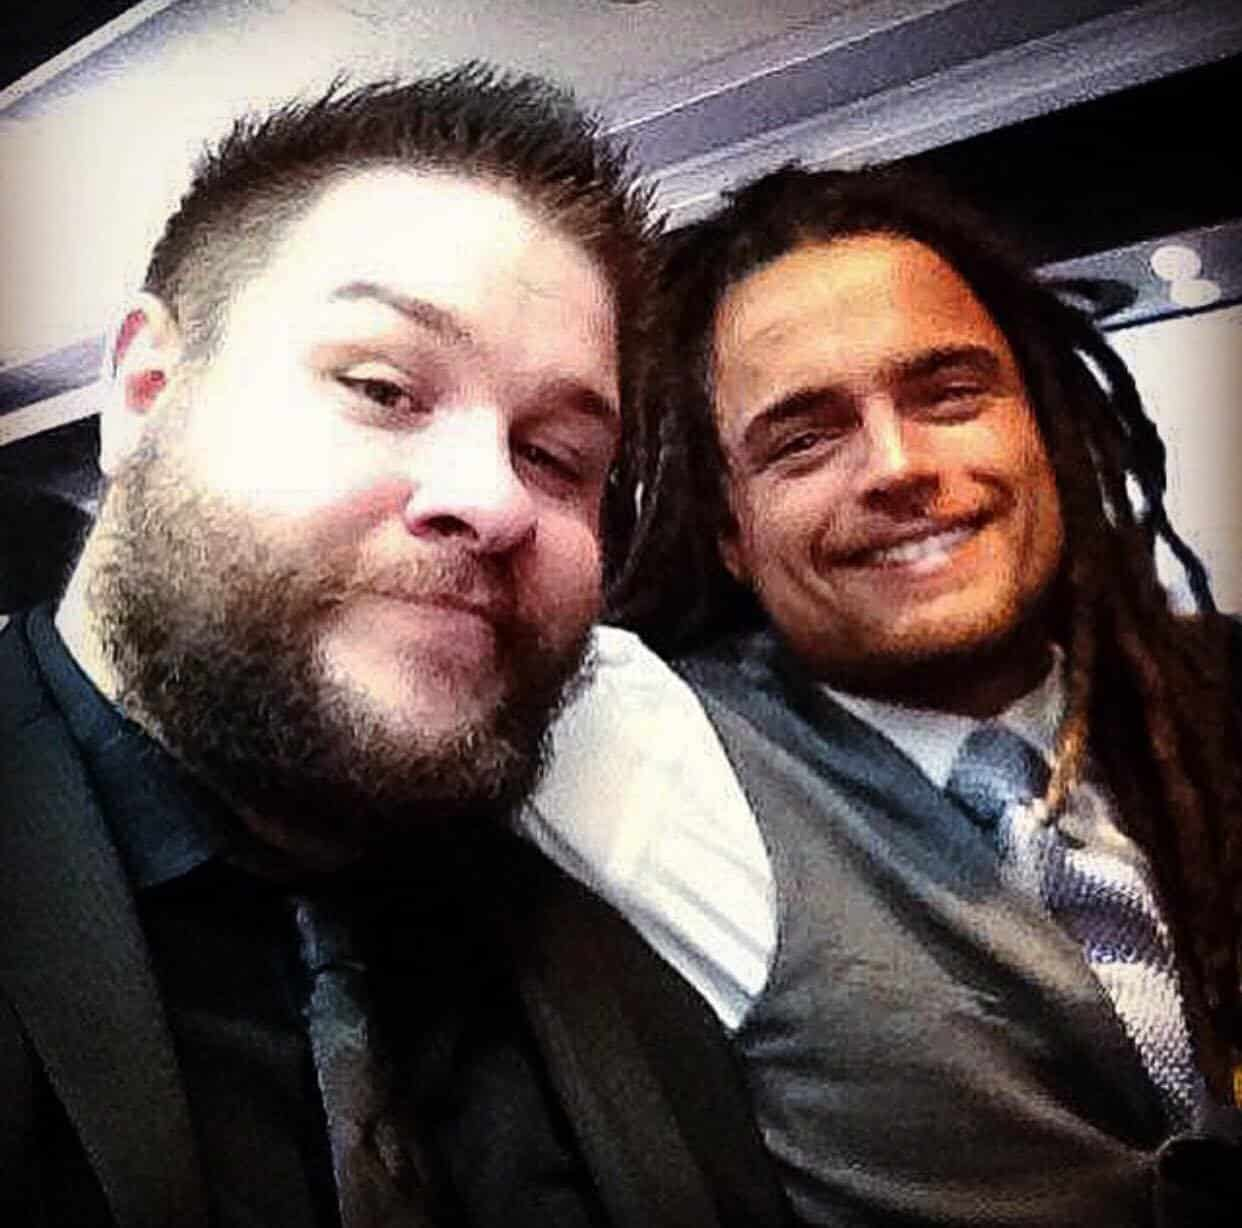 Kevin Owens and Juice Robinson take a selfie on an airplane